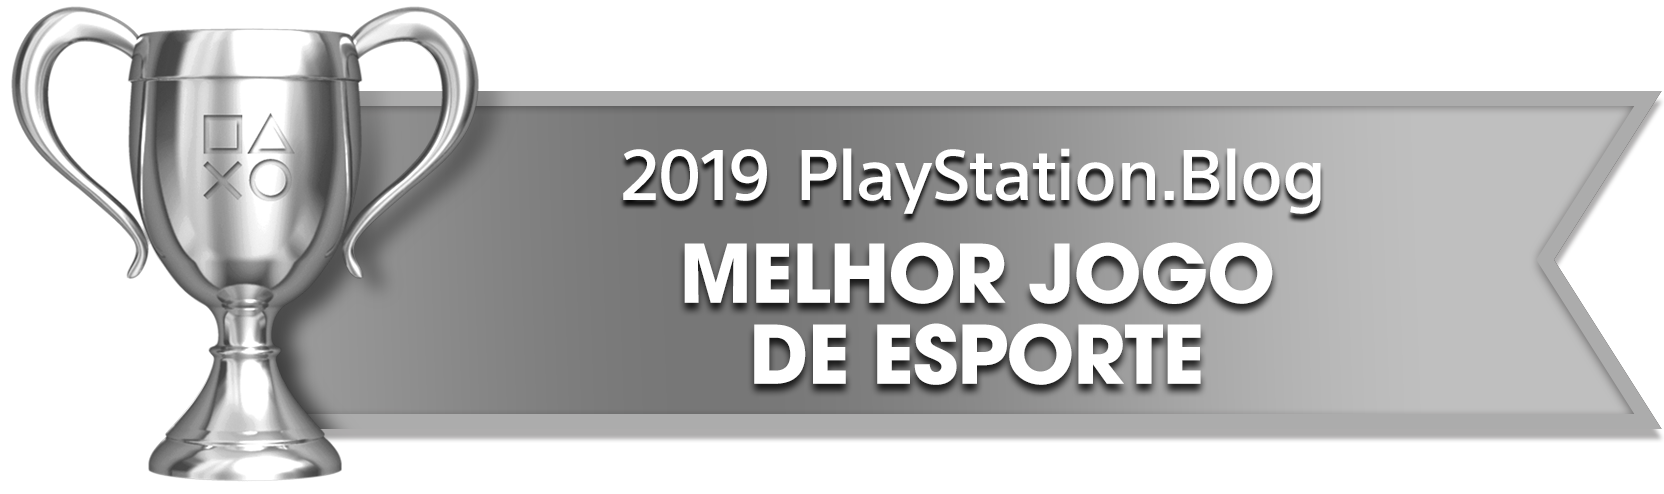 PS Blog Game of the Year 2019 - Best Sports Game - 3 - Silver